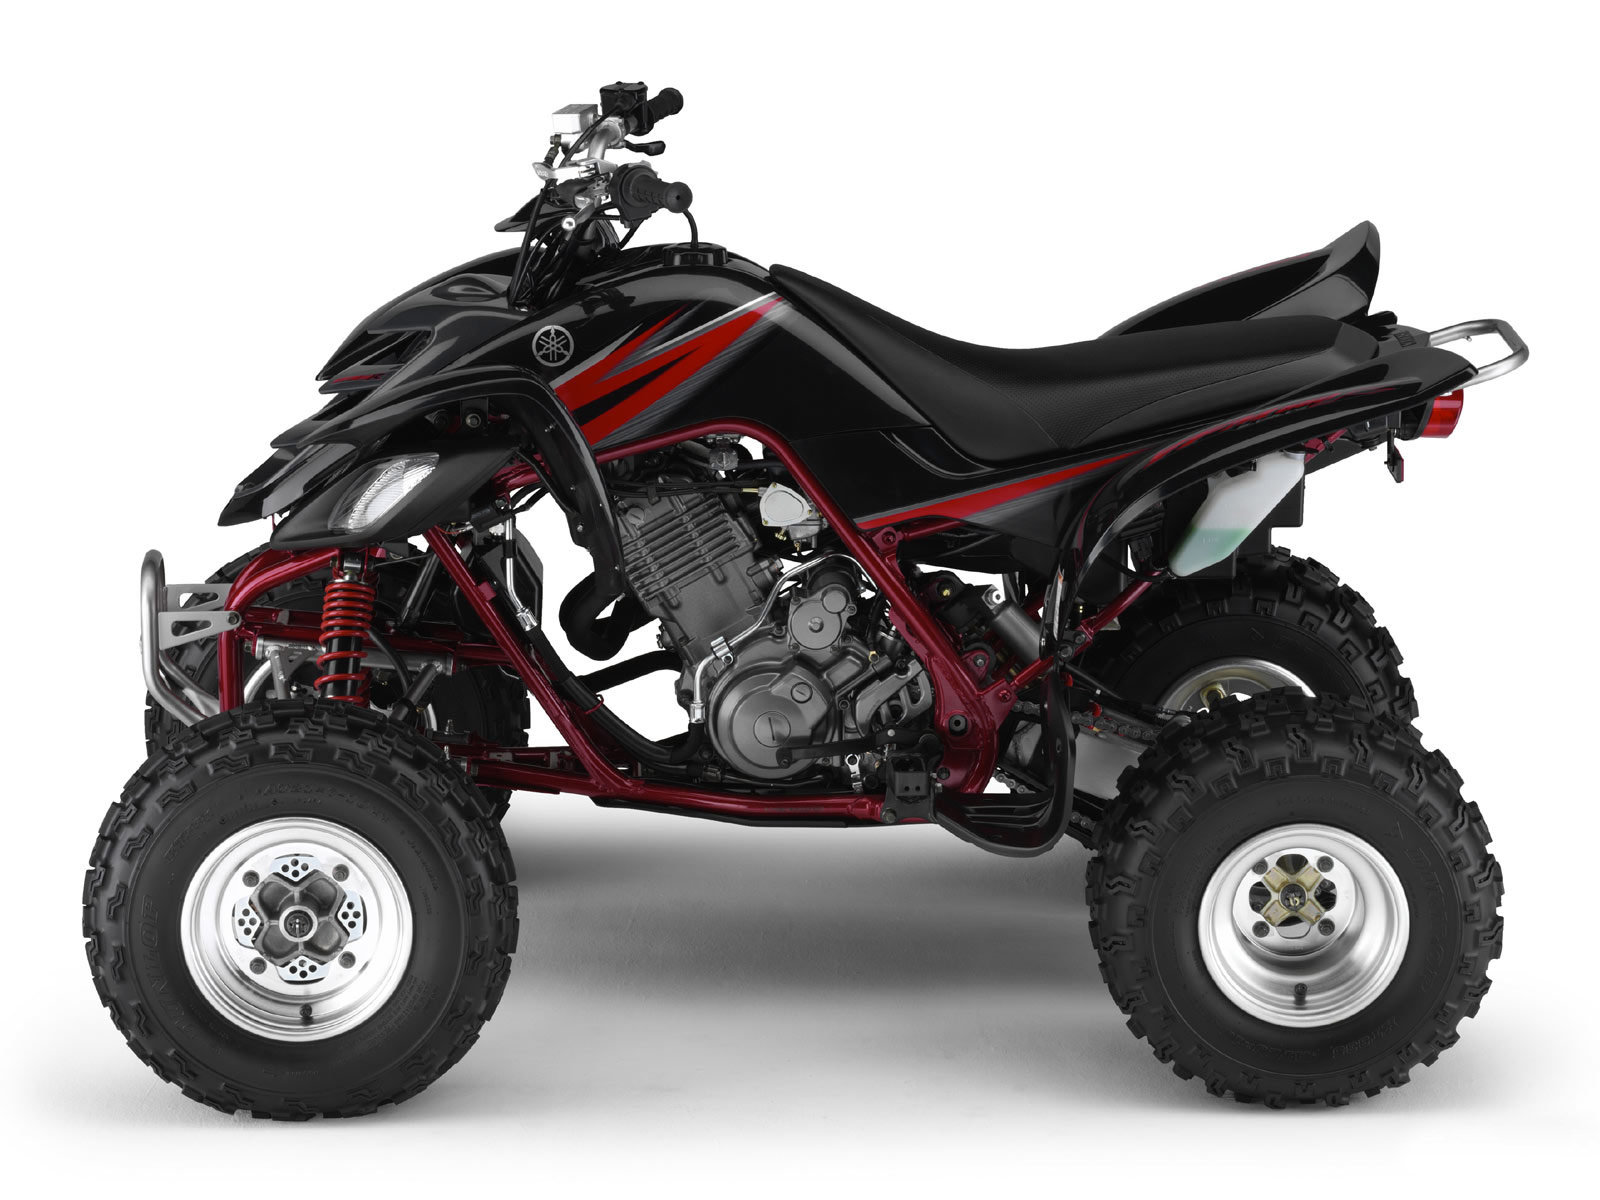 2005 YAMAHA Raptor 660 ATV pictures review and specs 1600x1200